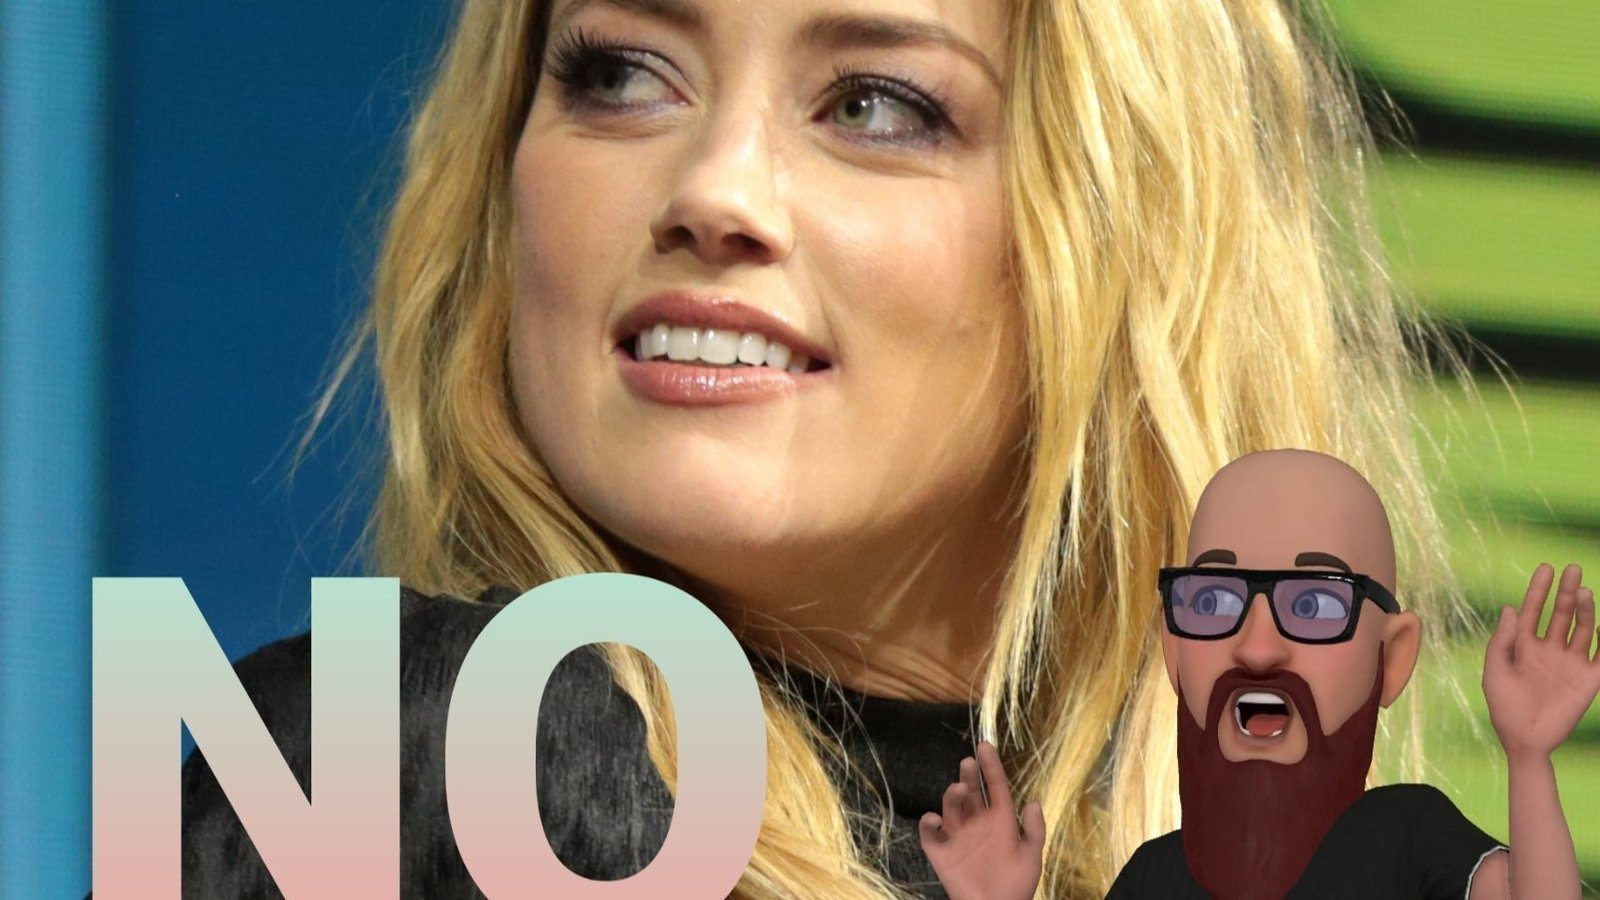 Petition · Remove Amber Heard from Hollywood · Change.org